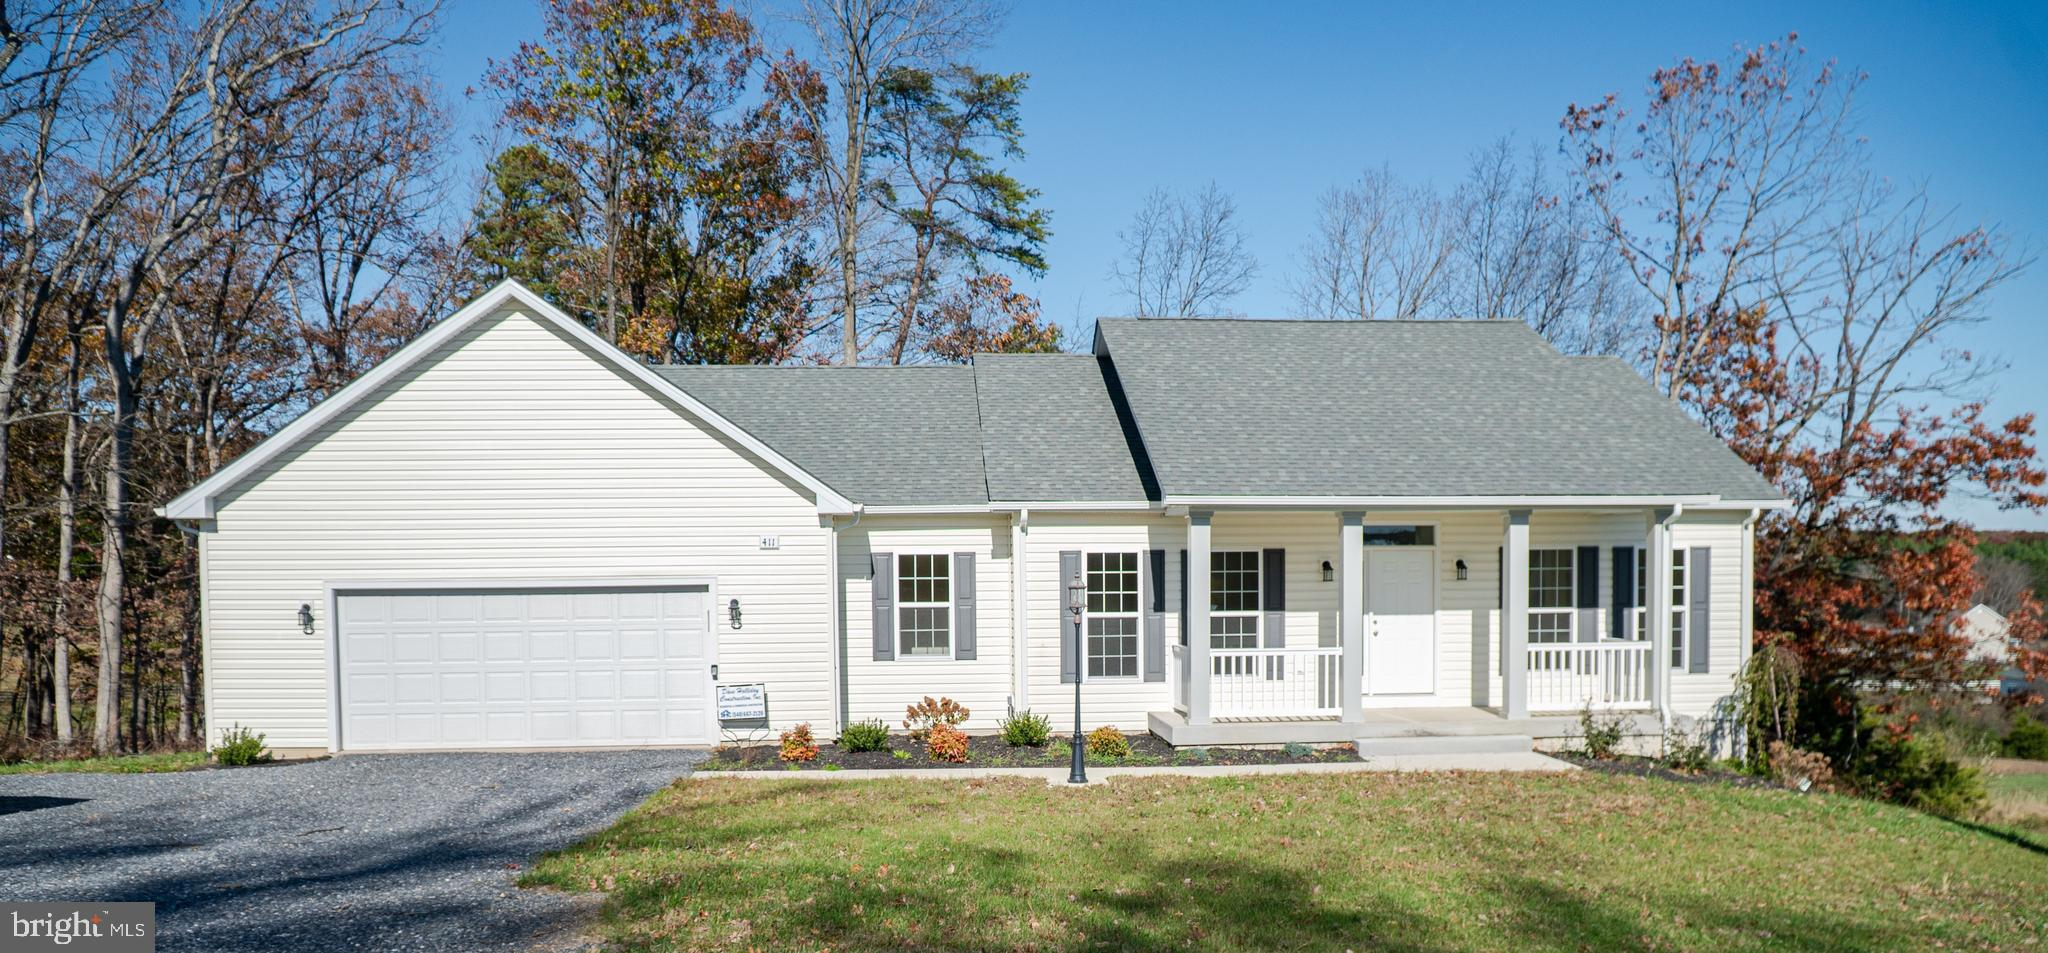 Move in ready new construction!  Main level living. Open floor plan. Kitchen has granite and stainle